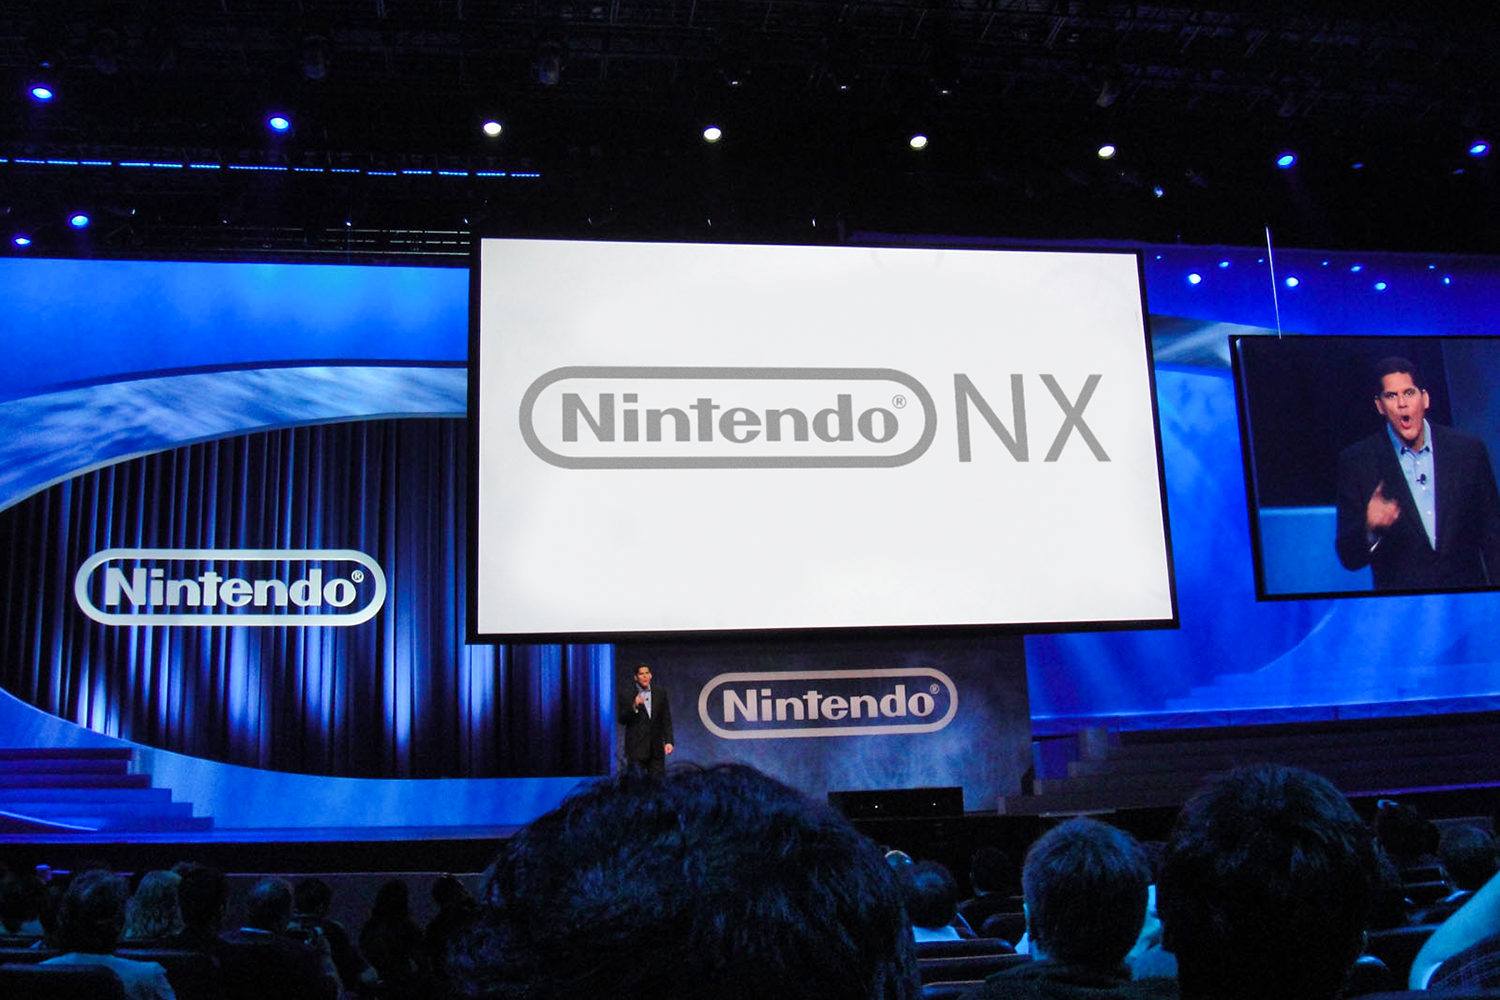 nintendo nx news Rumours Suggest Nintendo NX Will Go Back To Using Cartridges